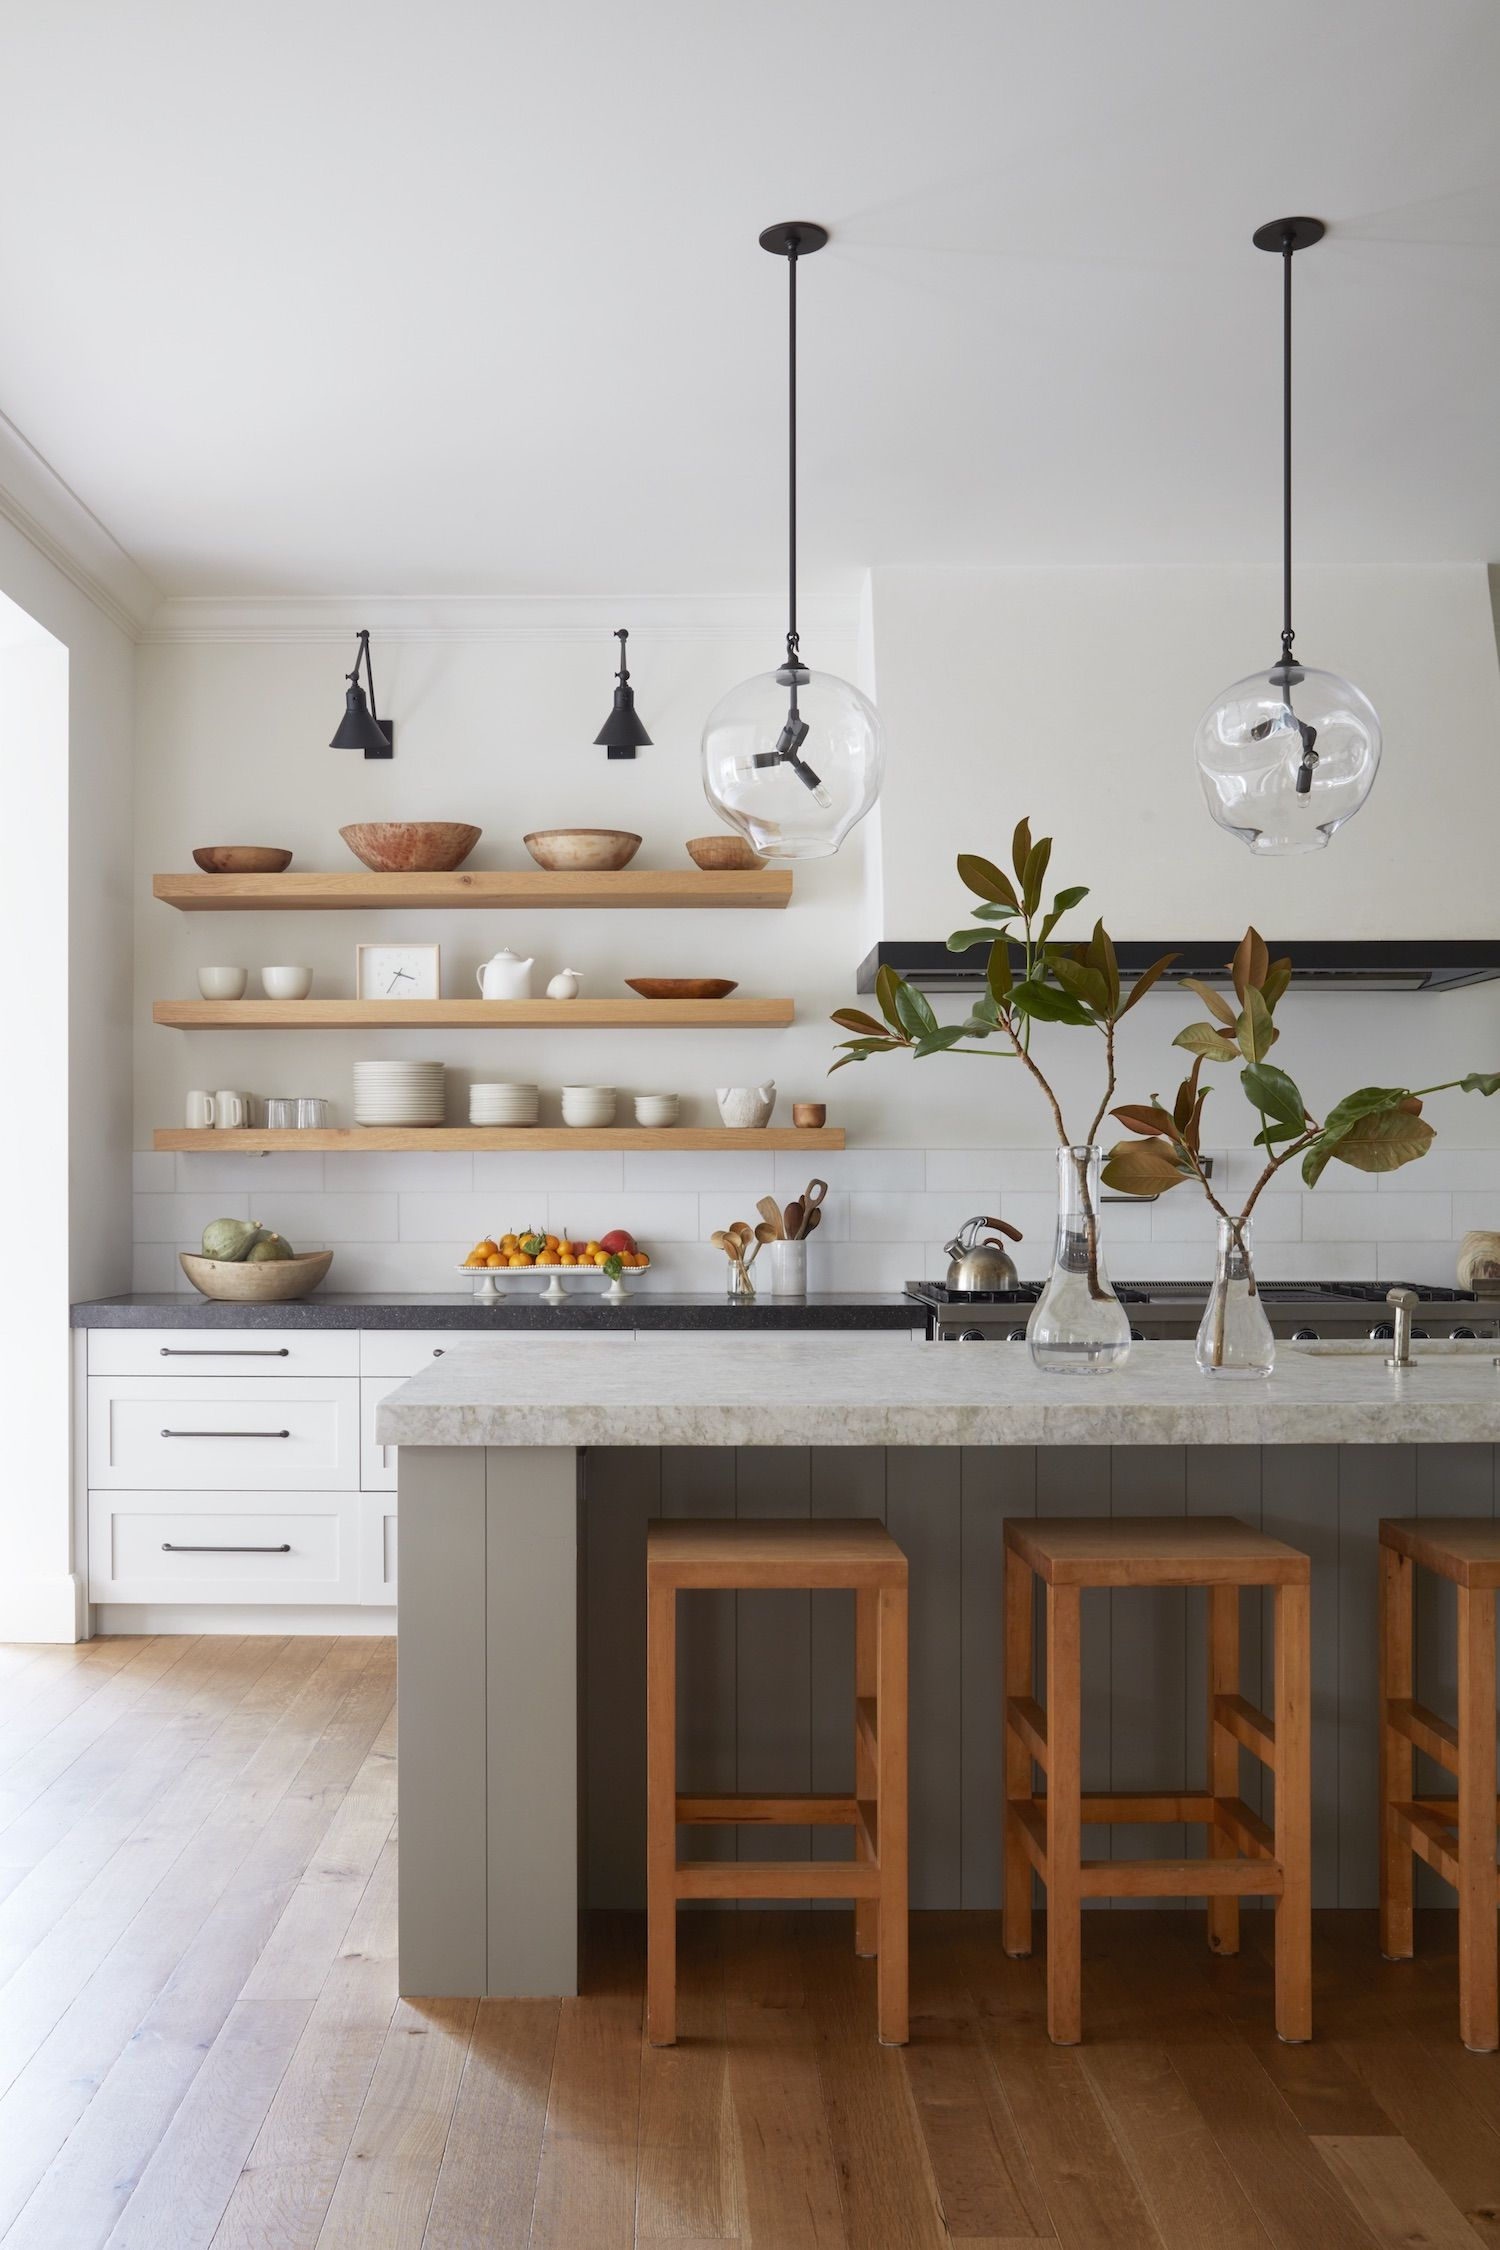 Kitchen Pendant Light Ideas With Images Modern Kitchen